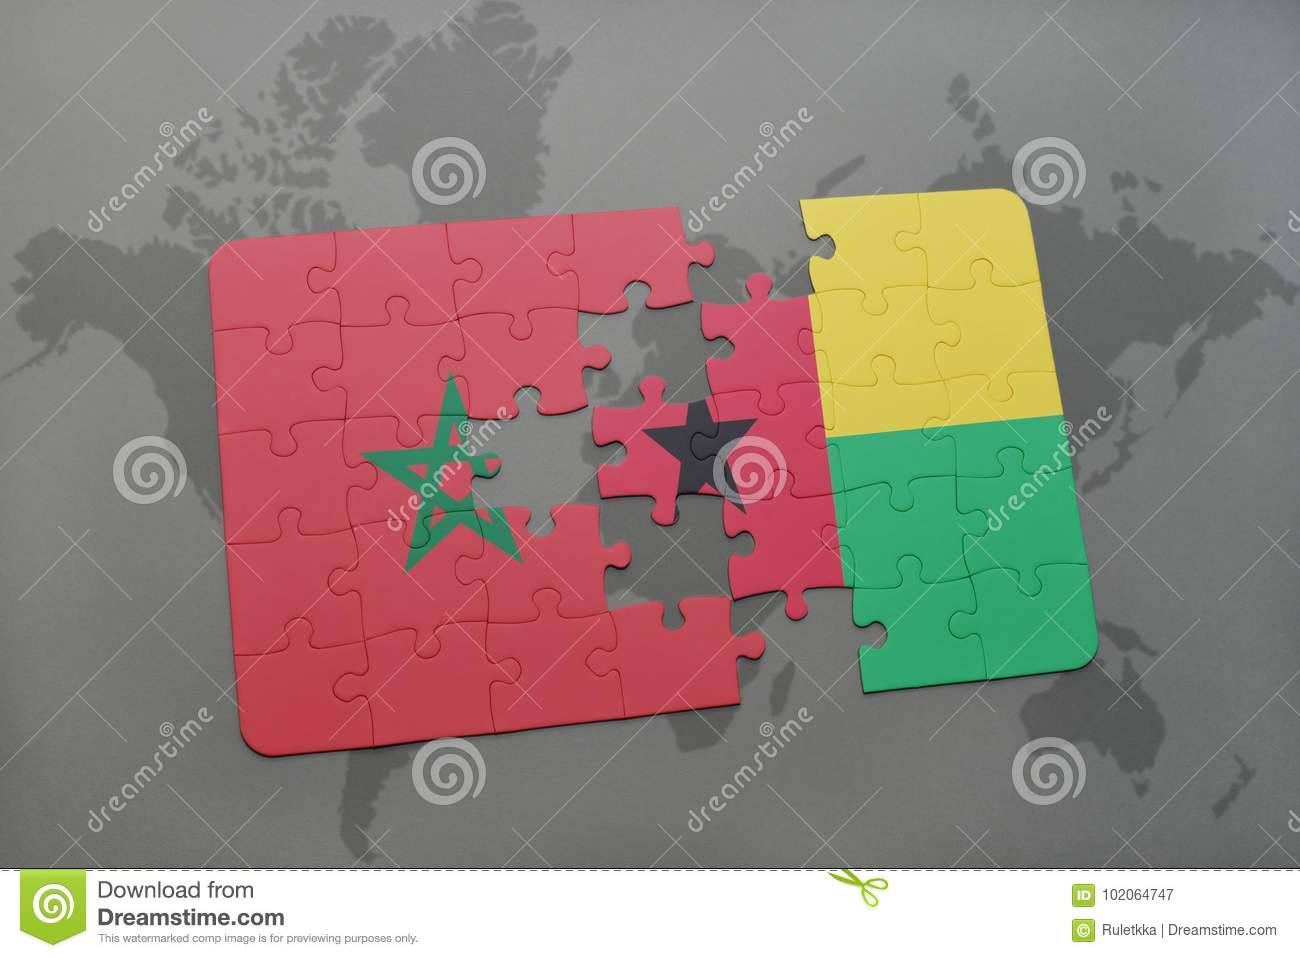 puzzle with the national flag of morocco and guinea bissau on a world map